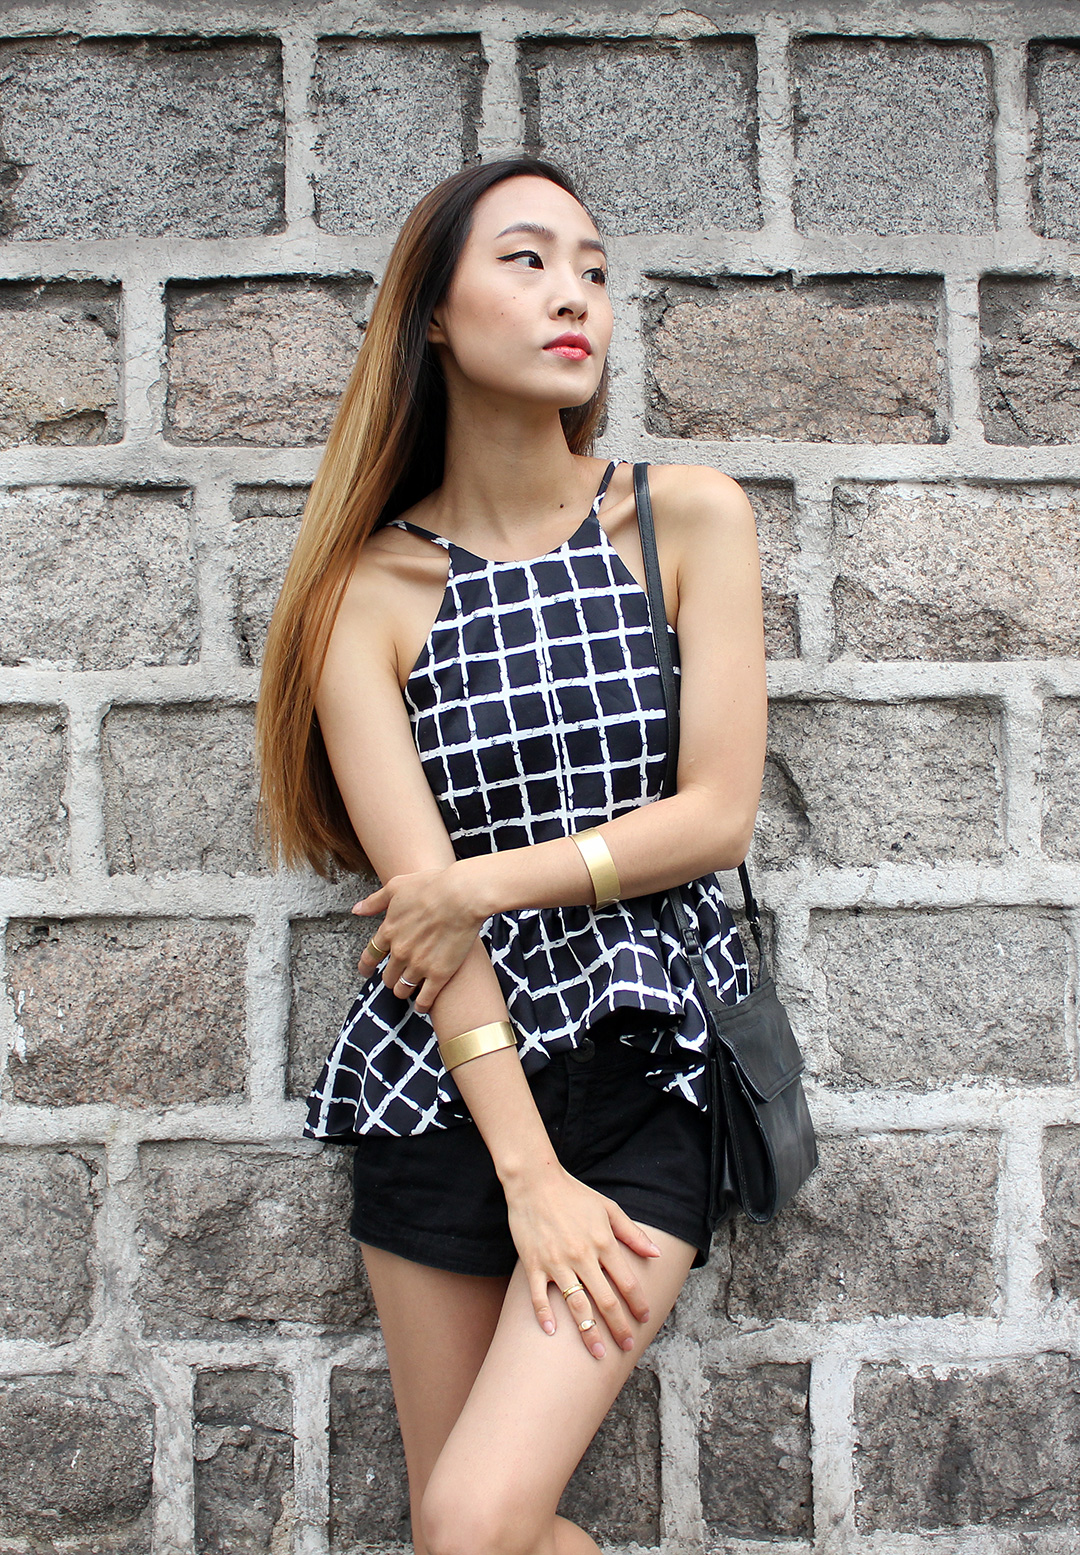 Top by Tobi, bracelets by Madewell, shorts by H&M, bag by Fossil